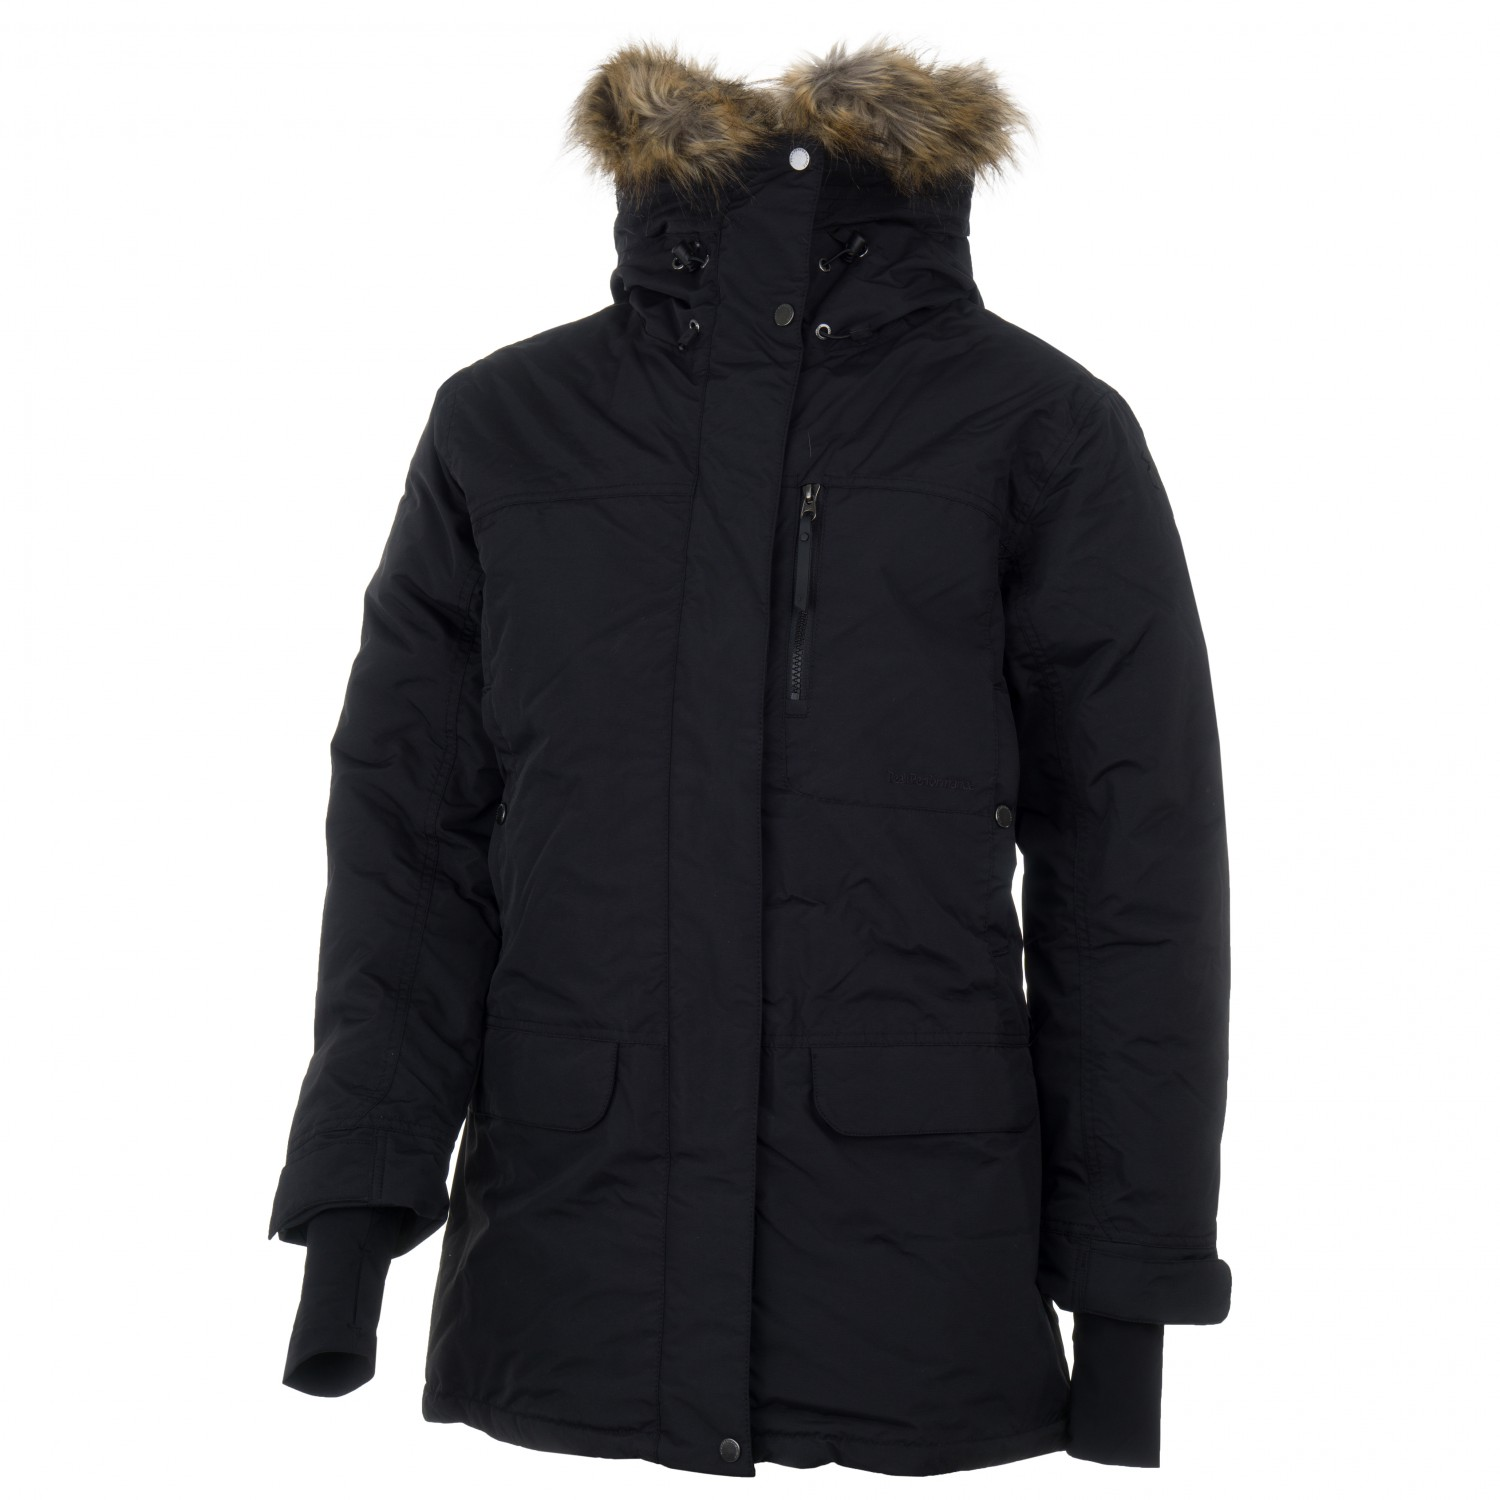 7ef91eaf5 Peak Performance - Women's Summit Down Parka - Winter jacket - Black Olive  | S